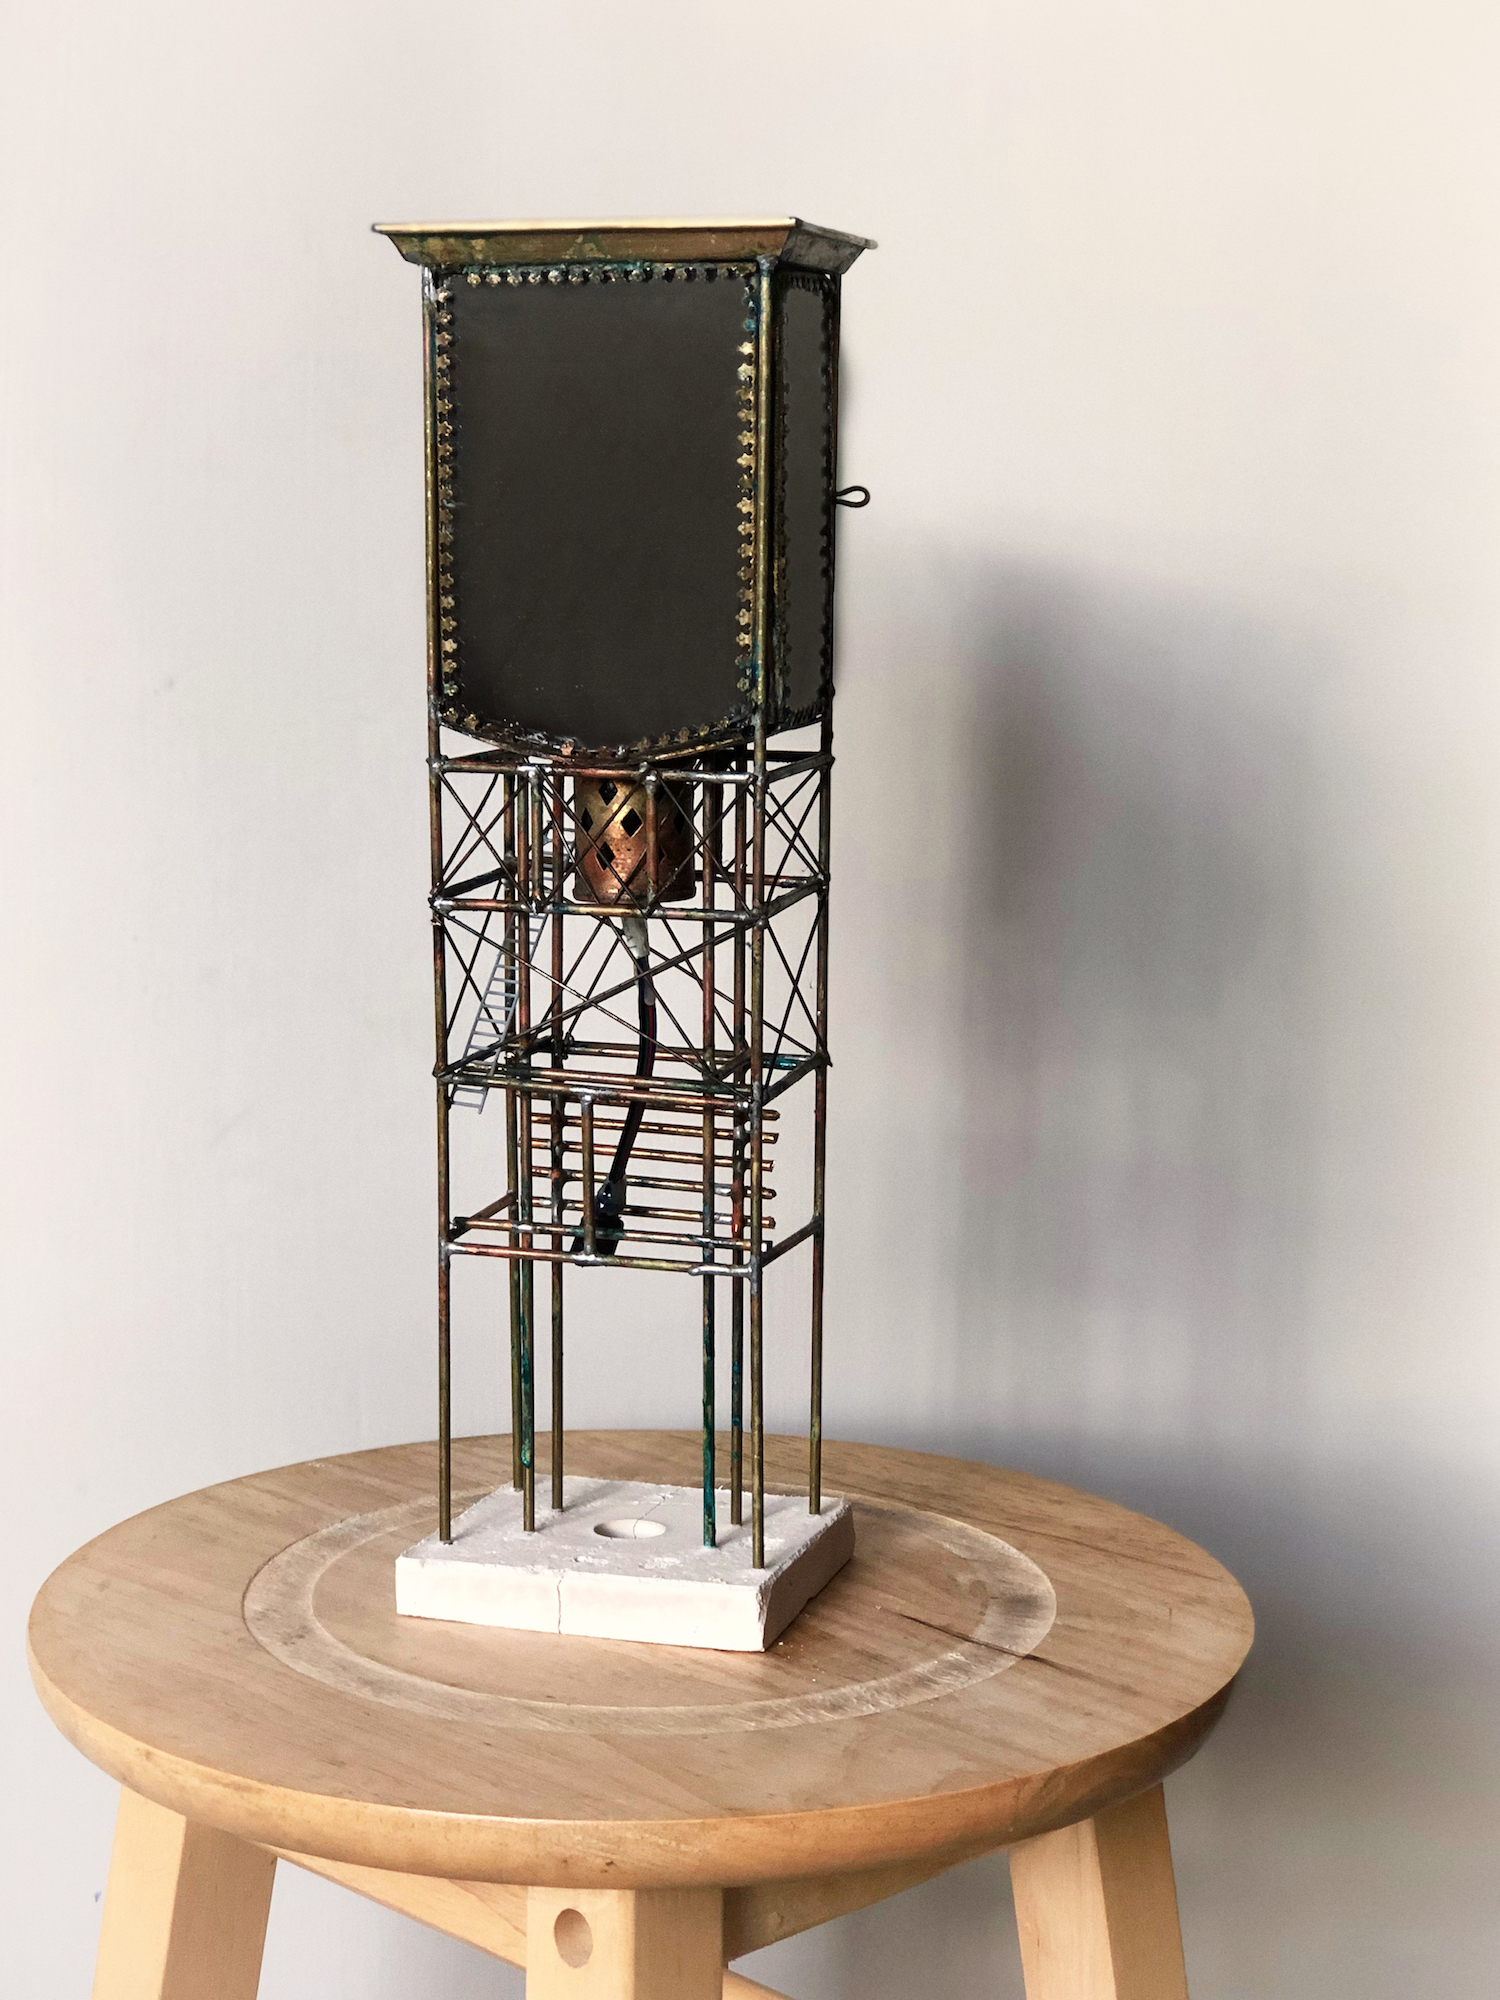 Rajinder Singh, 'There's a lady who's sure All that glitters is gold And she's buying a stairway to heaven', 2018, A metal and light sculpture using a vintage reconditioned Christian miniature shrine, two-way mirrors, brass rods and LED strip electronics, 35cm x 9cm x 6cm. Image courtesy of Wei-Ling Contemporary.